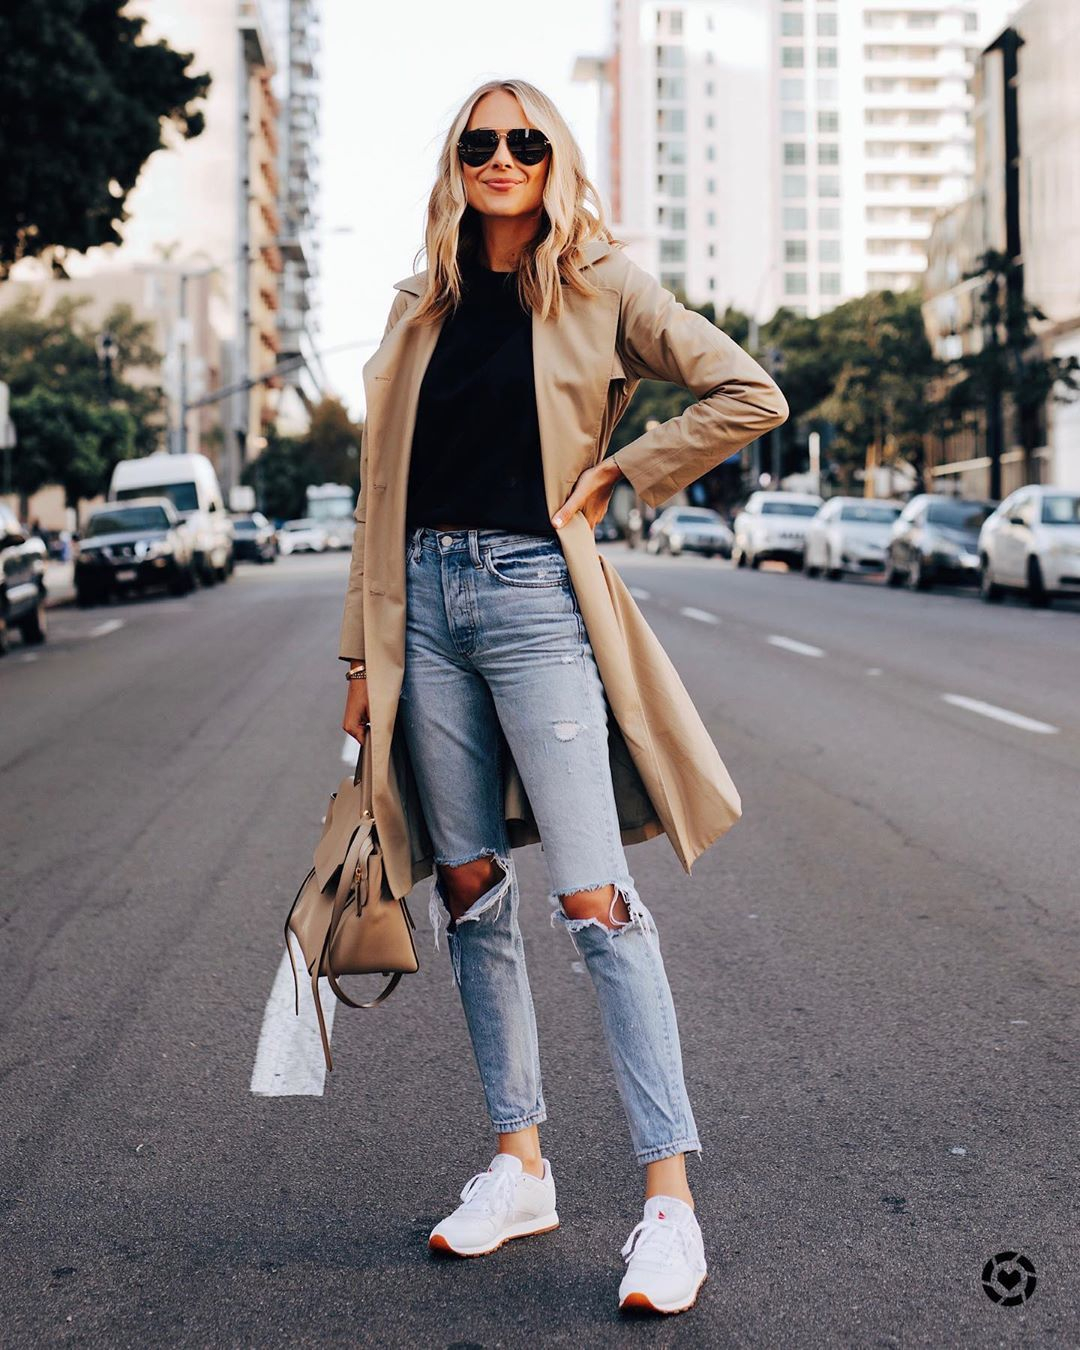 shoes sneakers Reebok ripped jeans skinny jeans trench coat bag black sweater